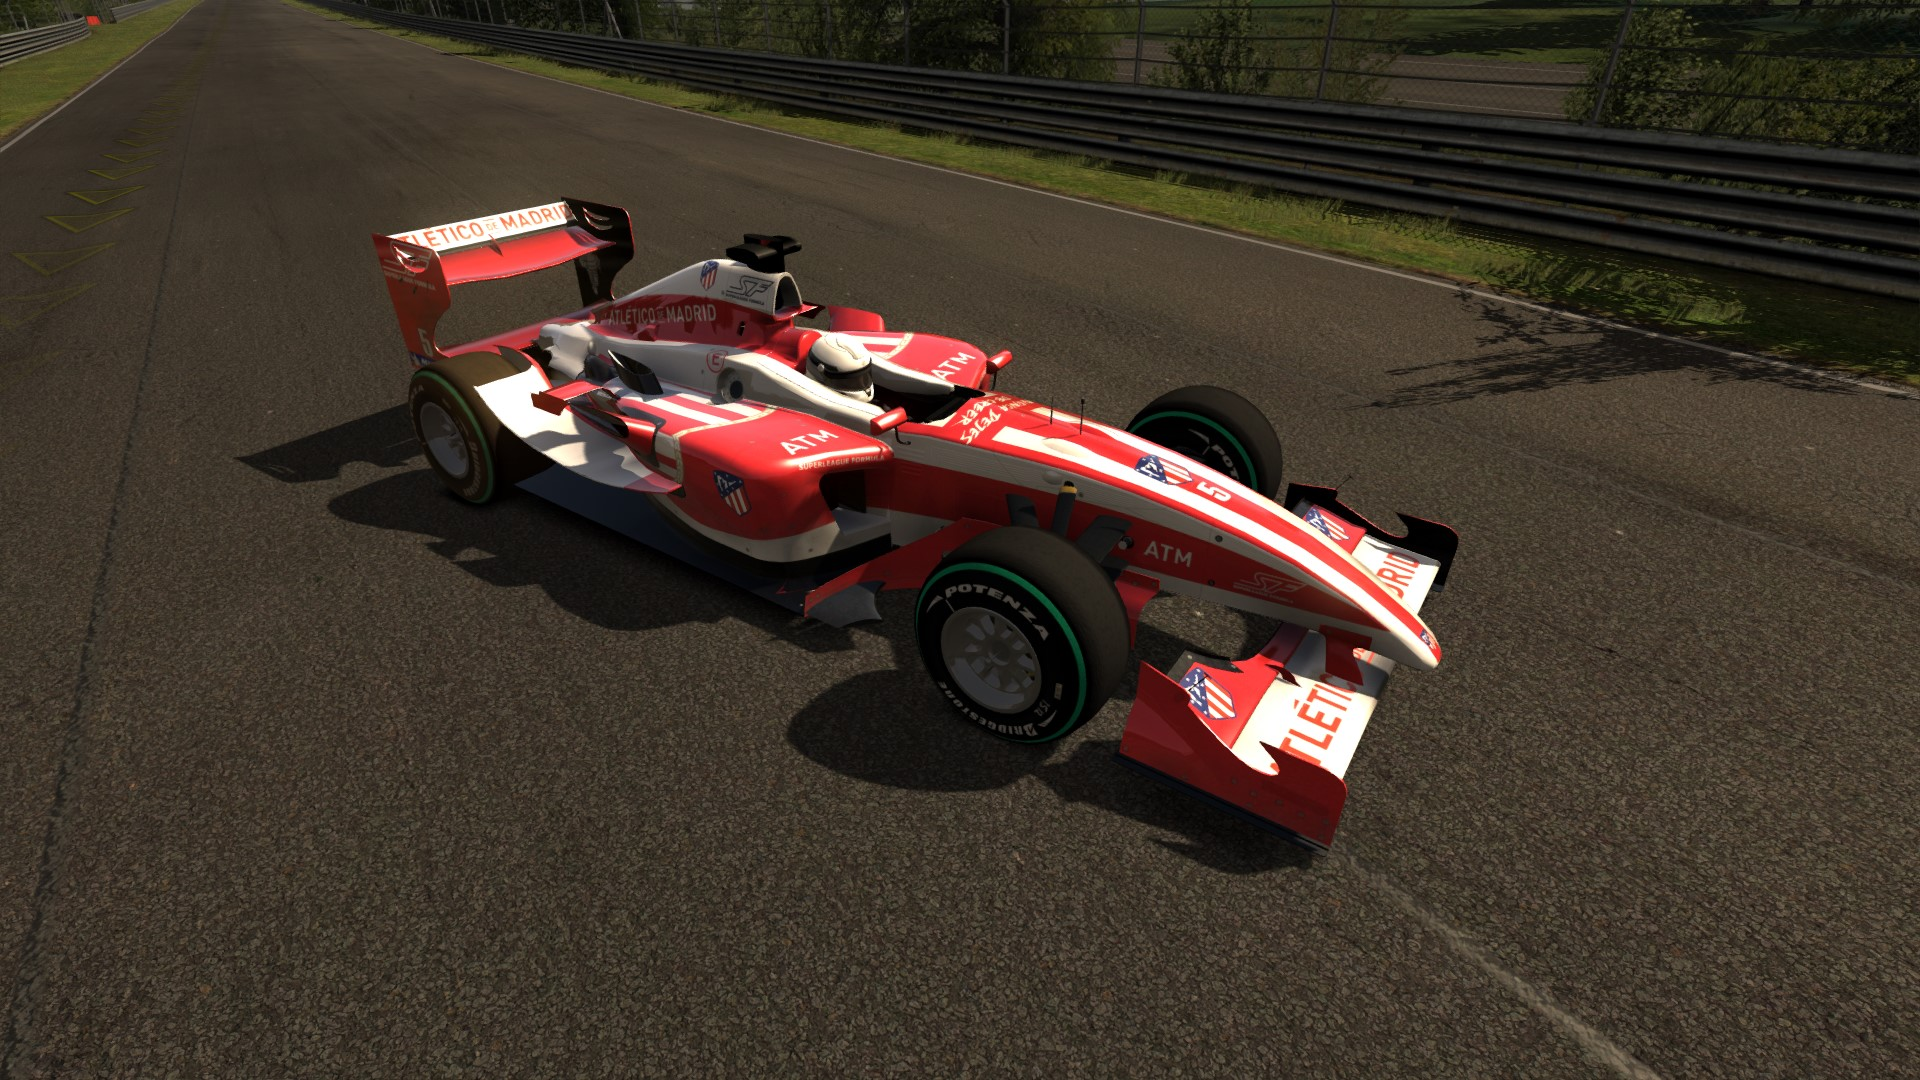 Screenshot_superleague_formula_ks_nordschleife_17-6-119-19-9-1.jpg